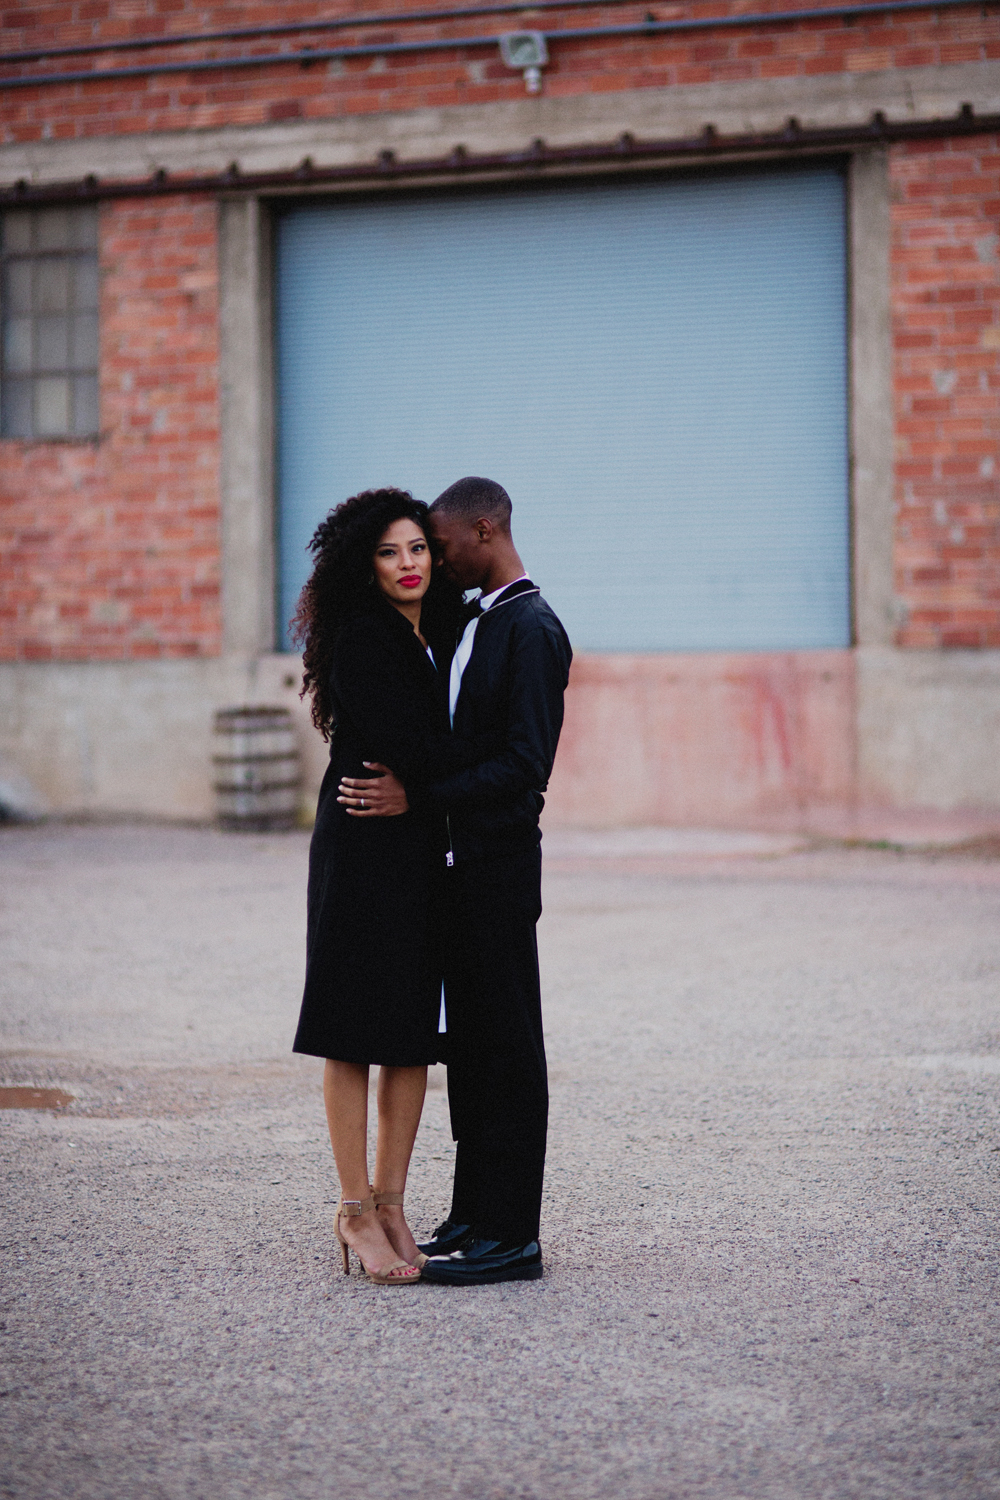 Marcus + Amber | Urban Elopement Inspiration | Albuquerque, New Mexico 21.jpg